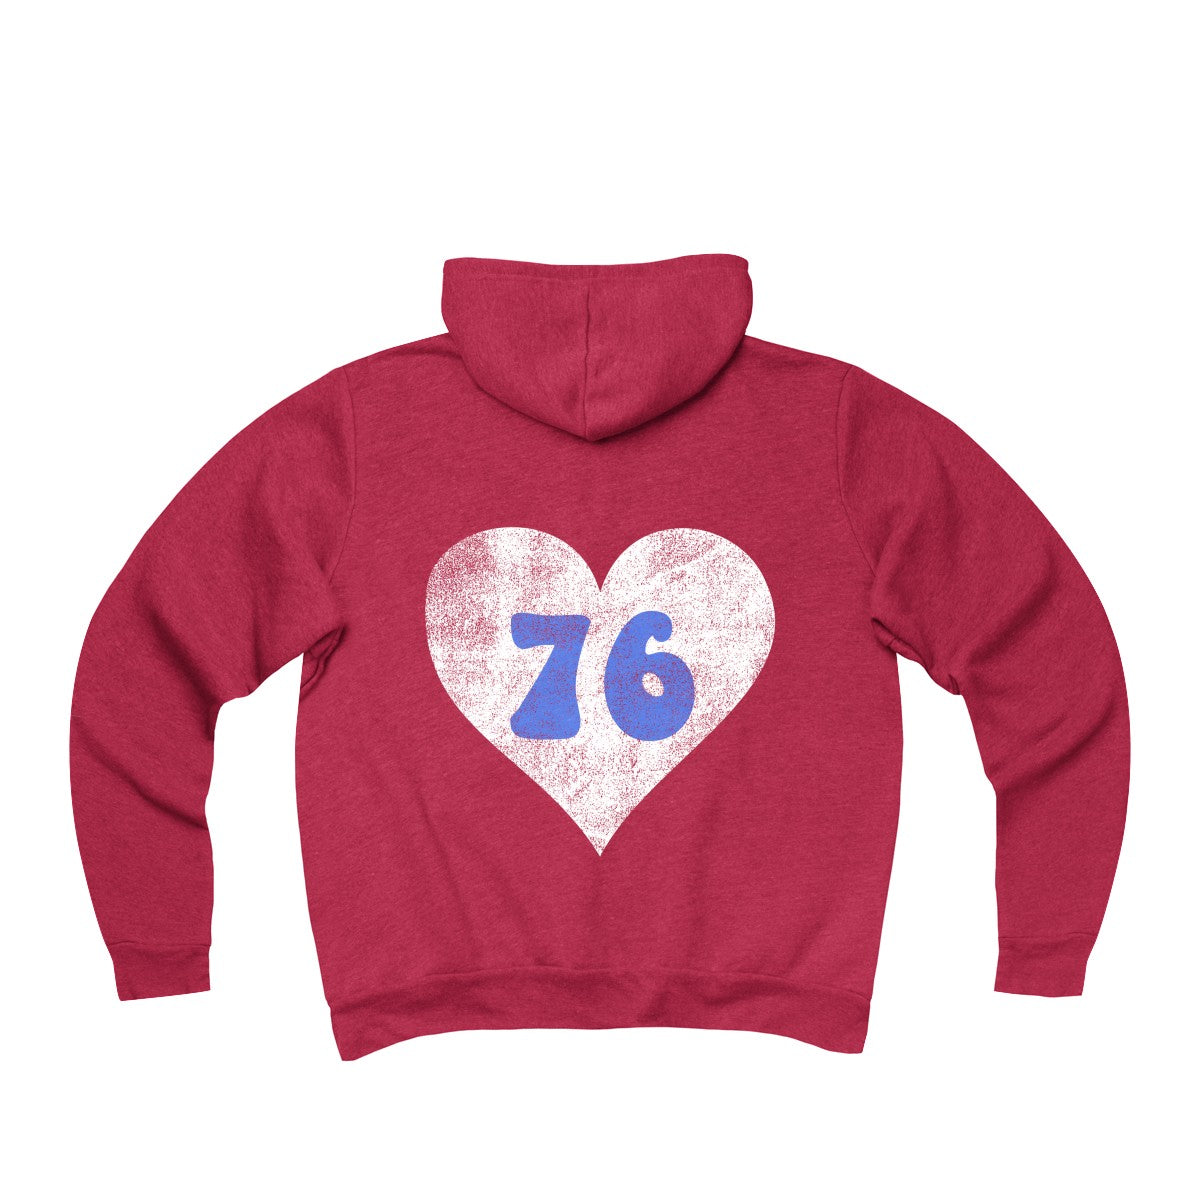 Red Retro Philly 76 Heart Unisex Sponge Fleece Full-Zip Hoodie